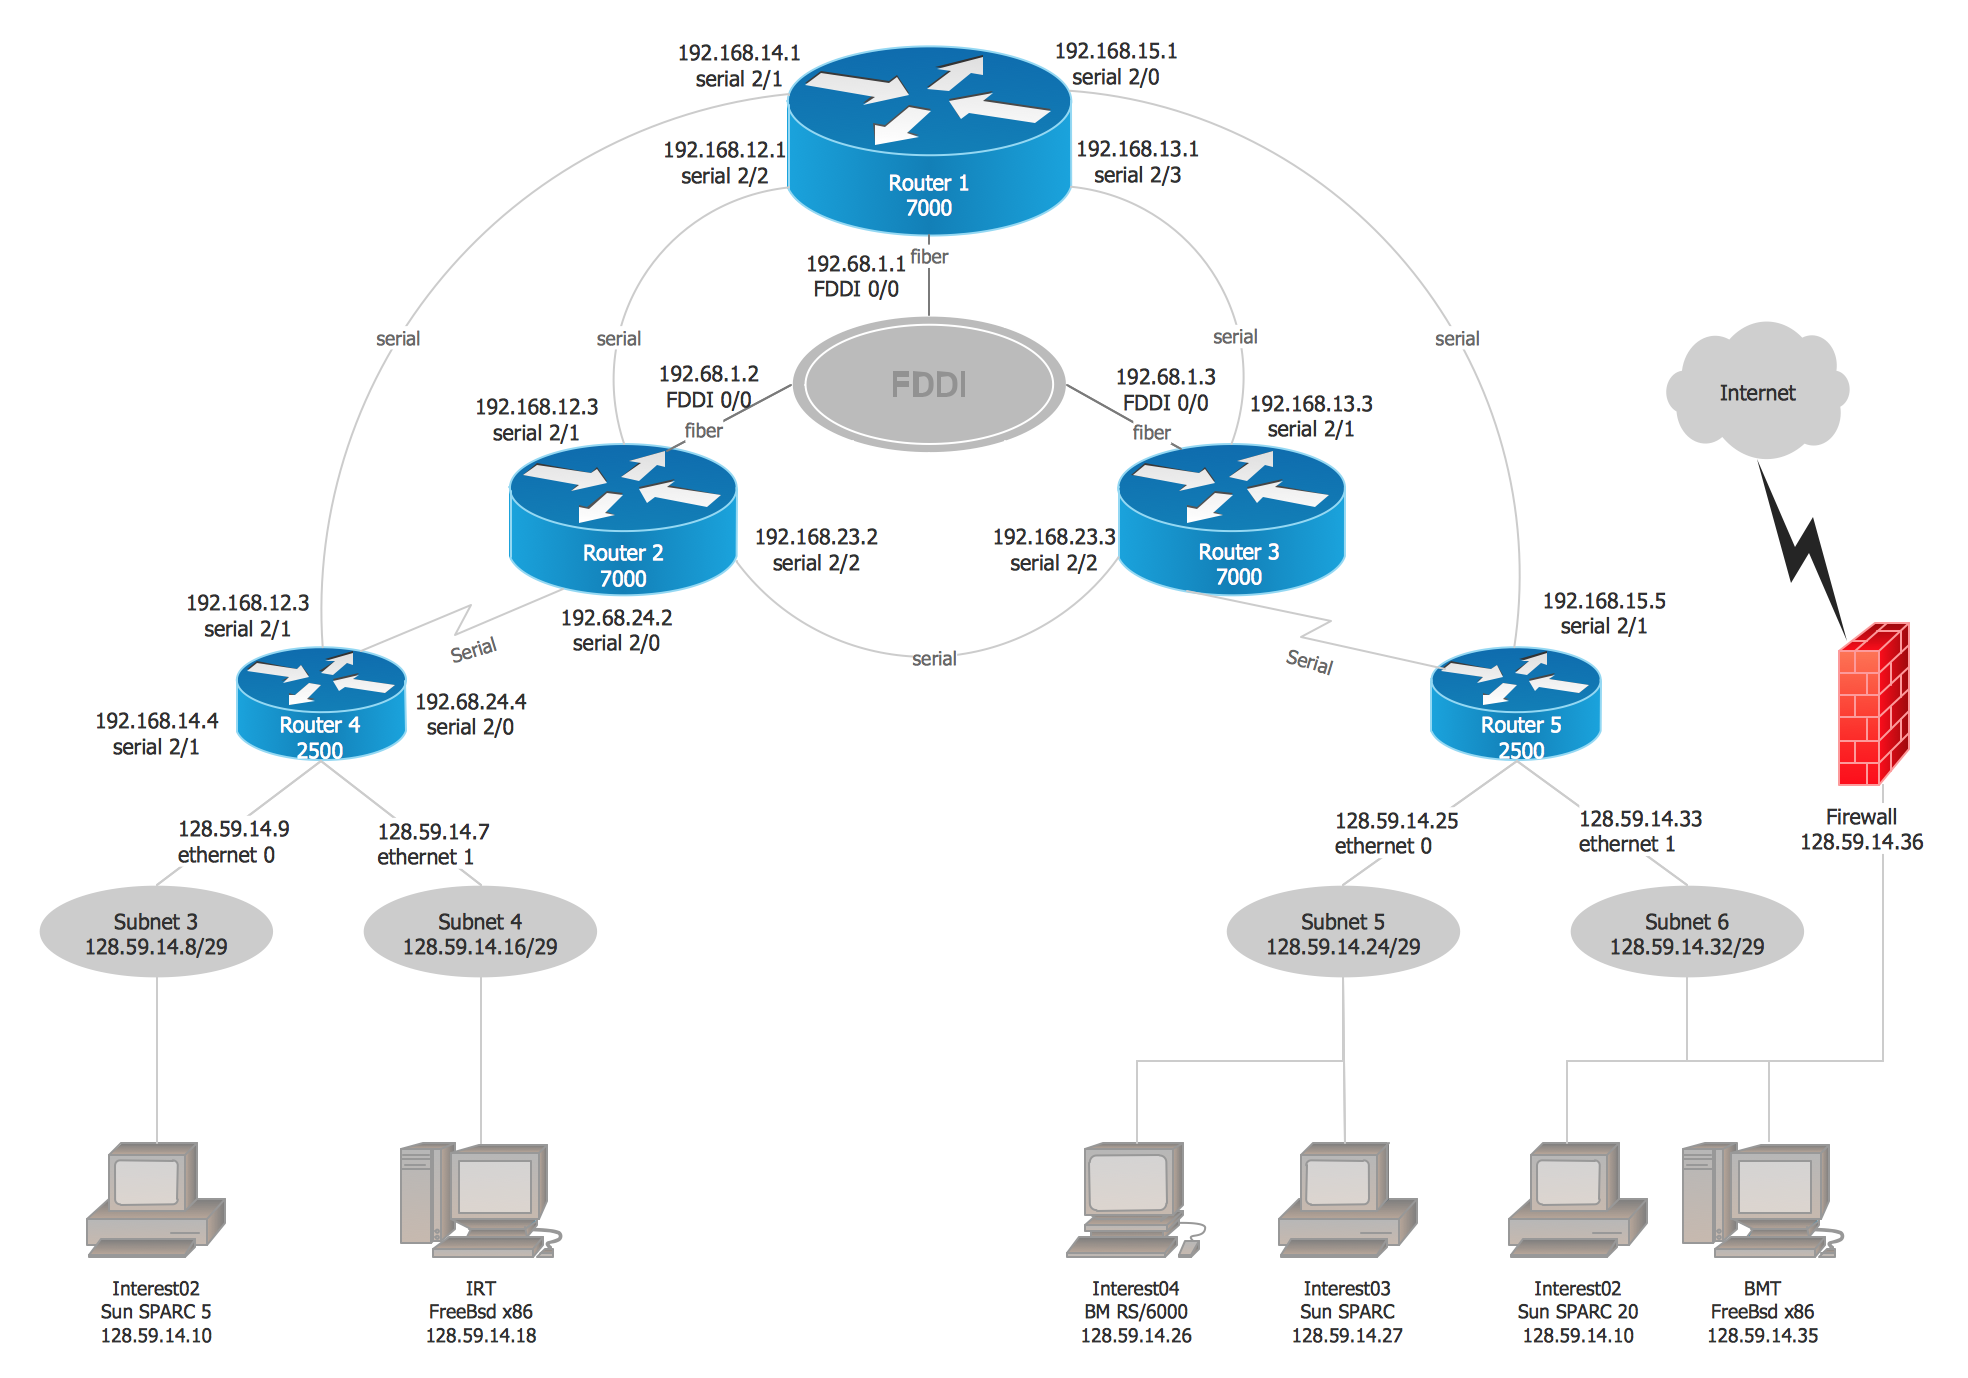 Cisco Wireless Network Diagram Cisco Network Examples And Templates Cisco Network Topology Cisco Wlan Diagram